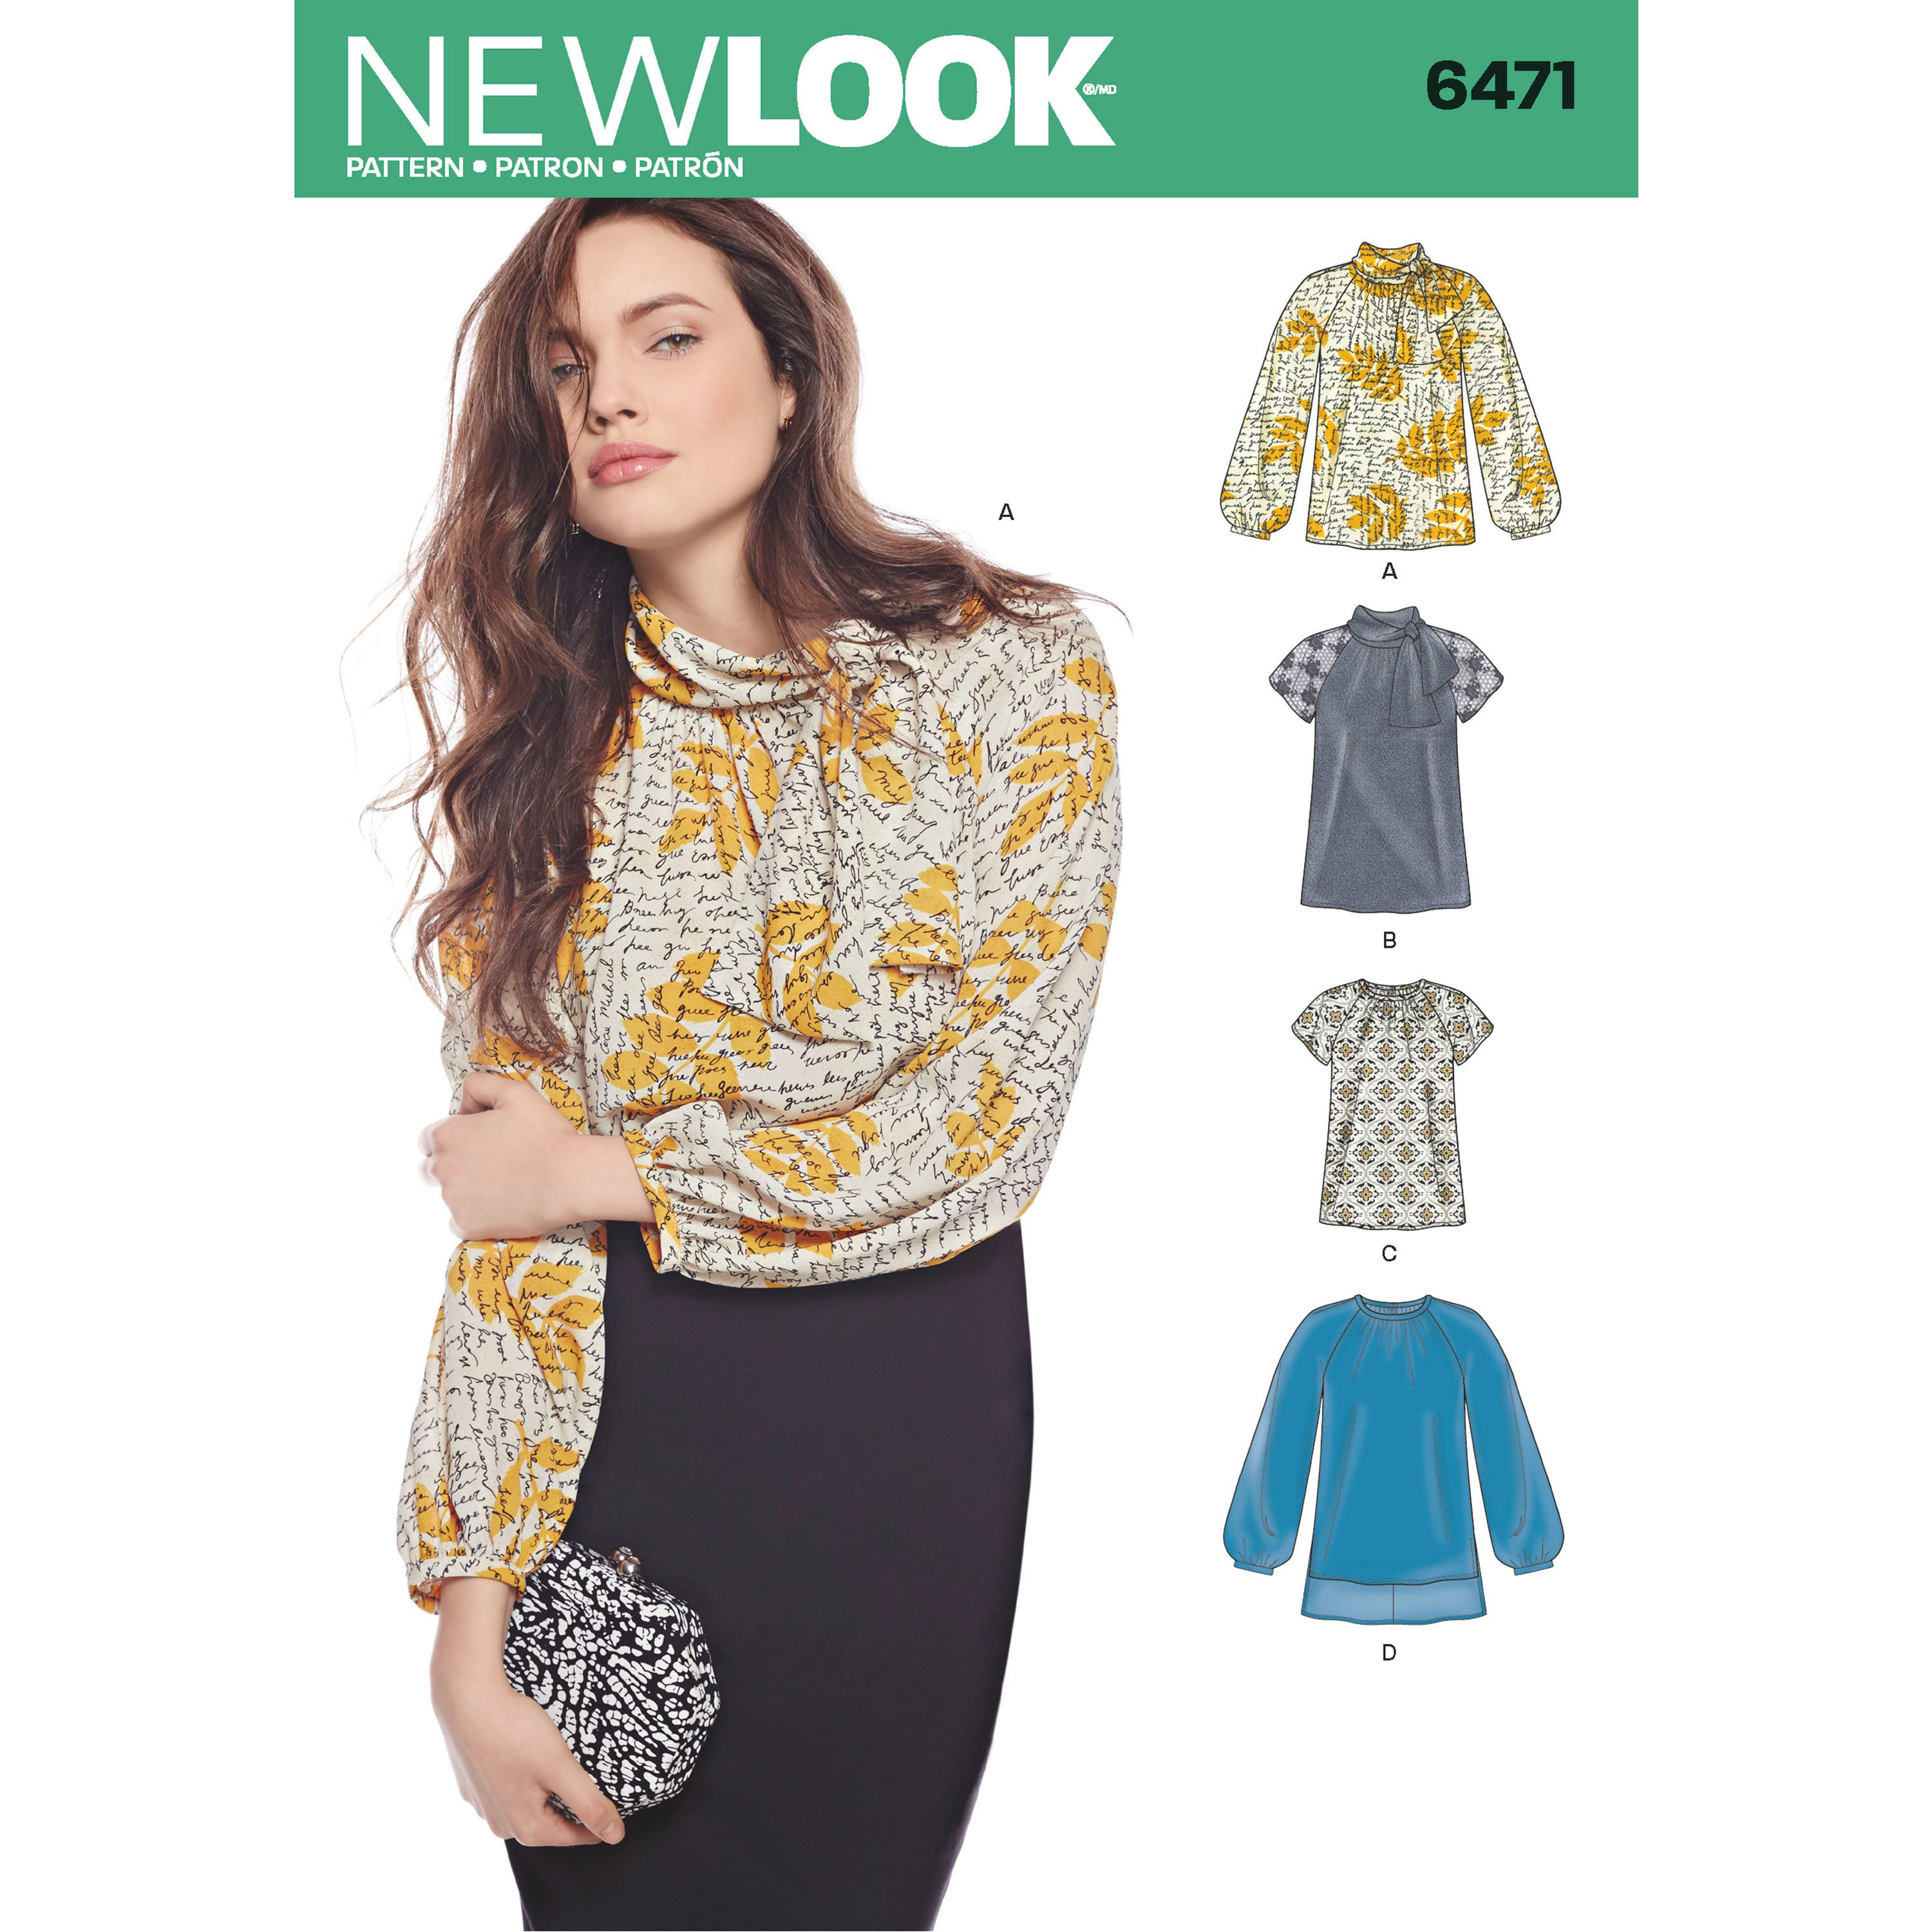 New Look 6471 Misses' Blouses and Tunic with Neckline Variations